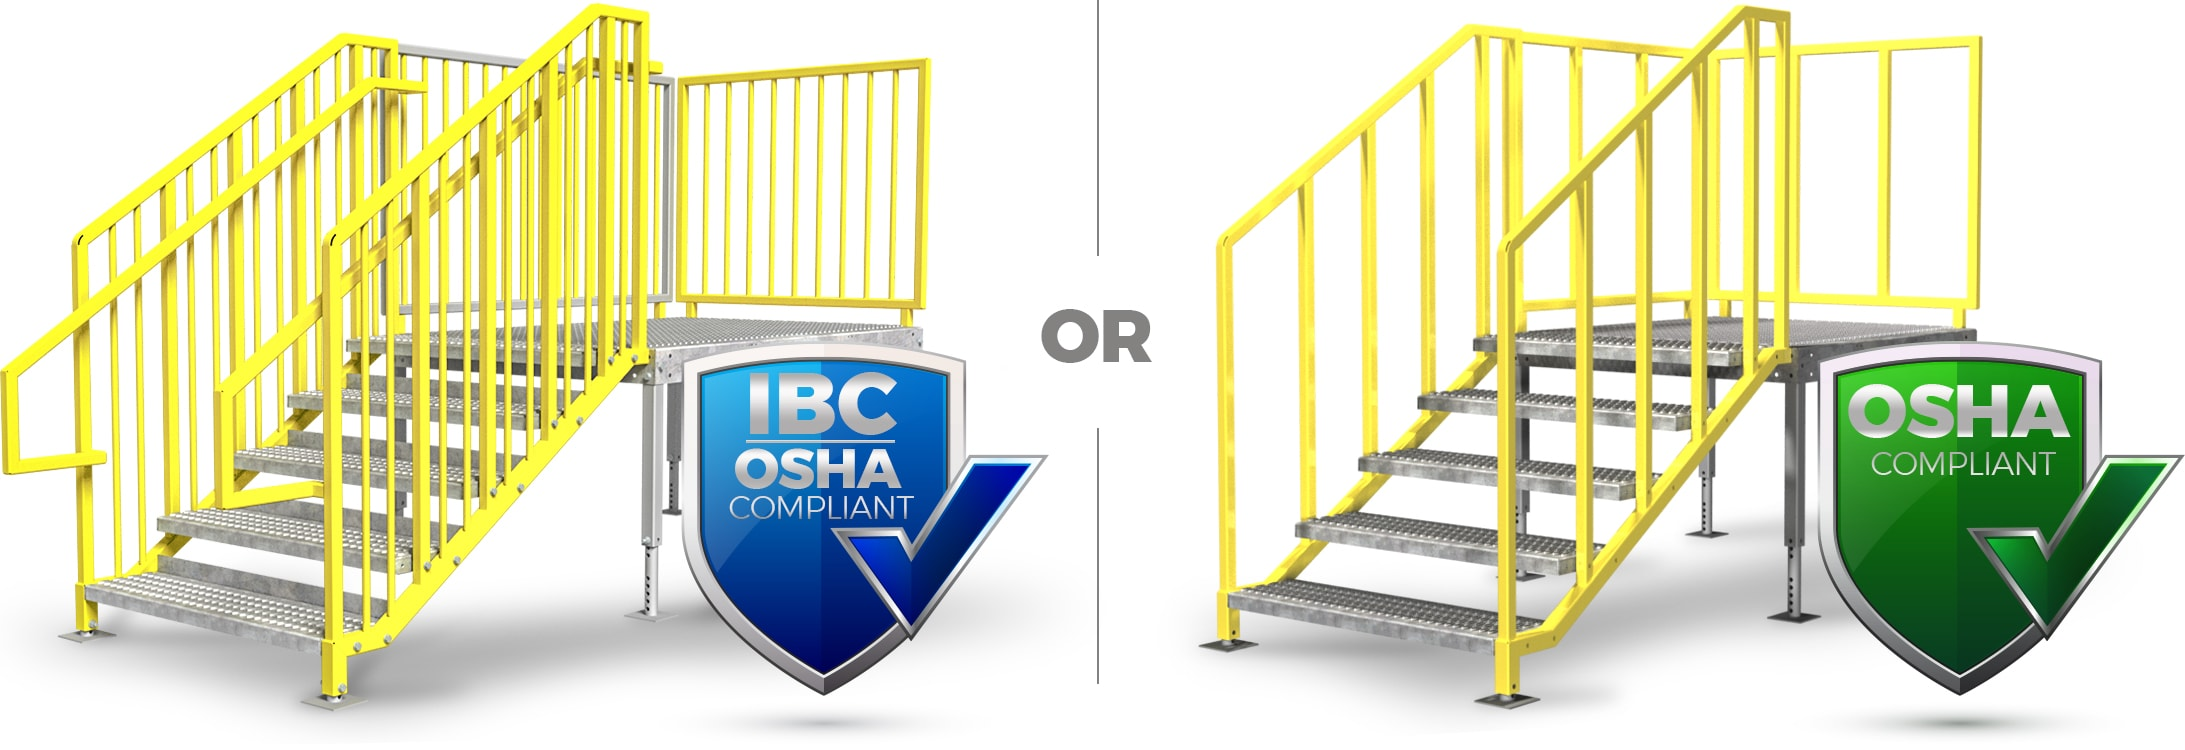 Illustration about IBC and OSHA compliant options for portable stairs